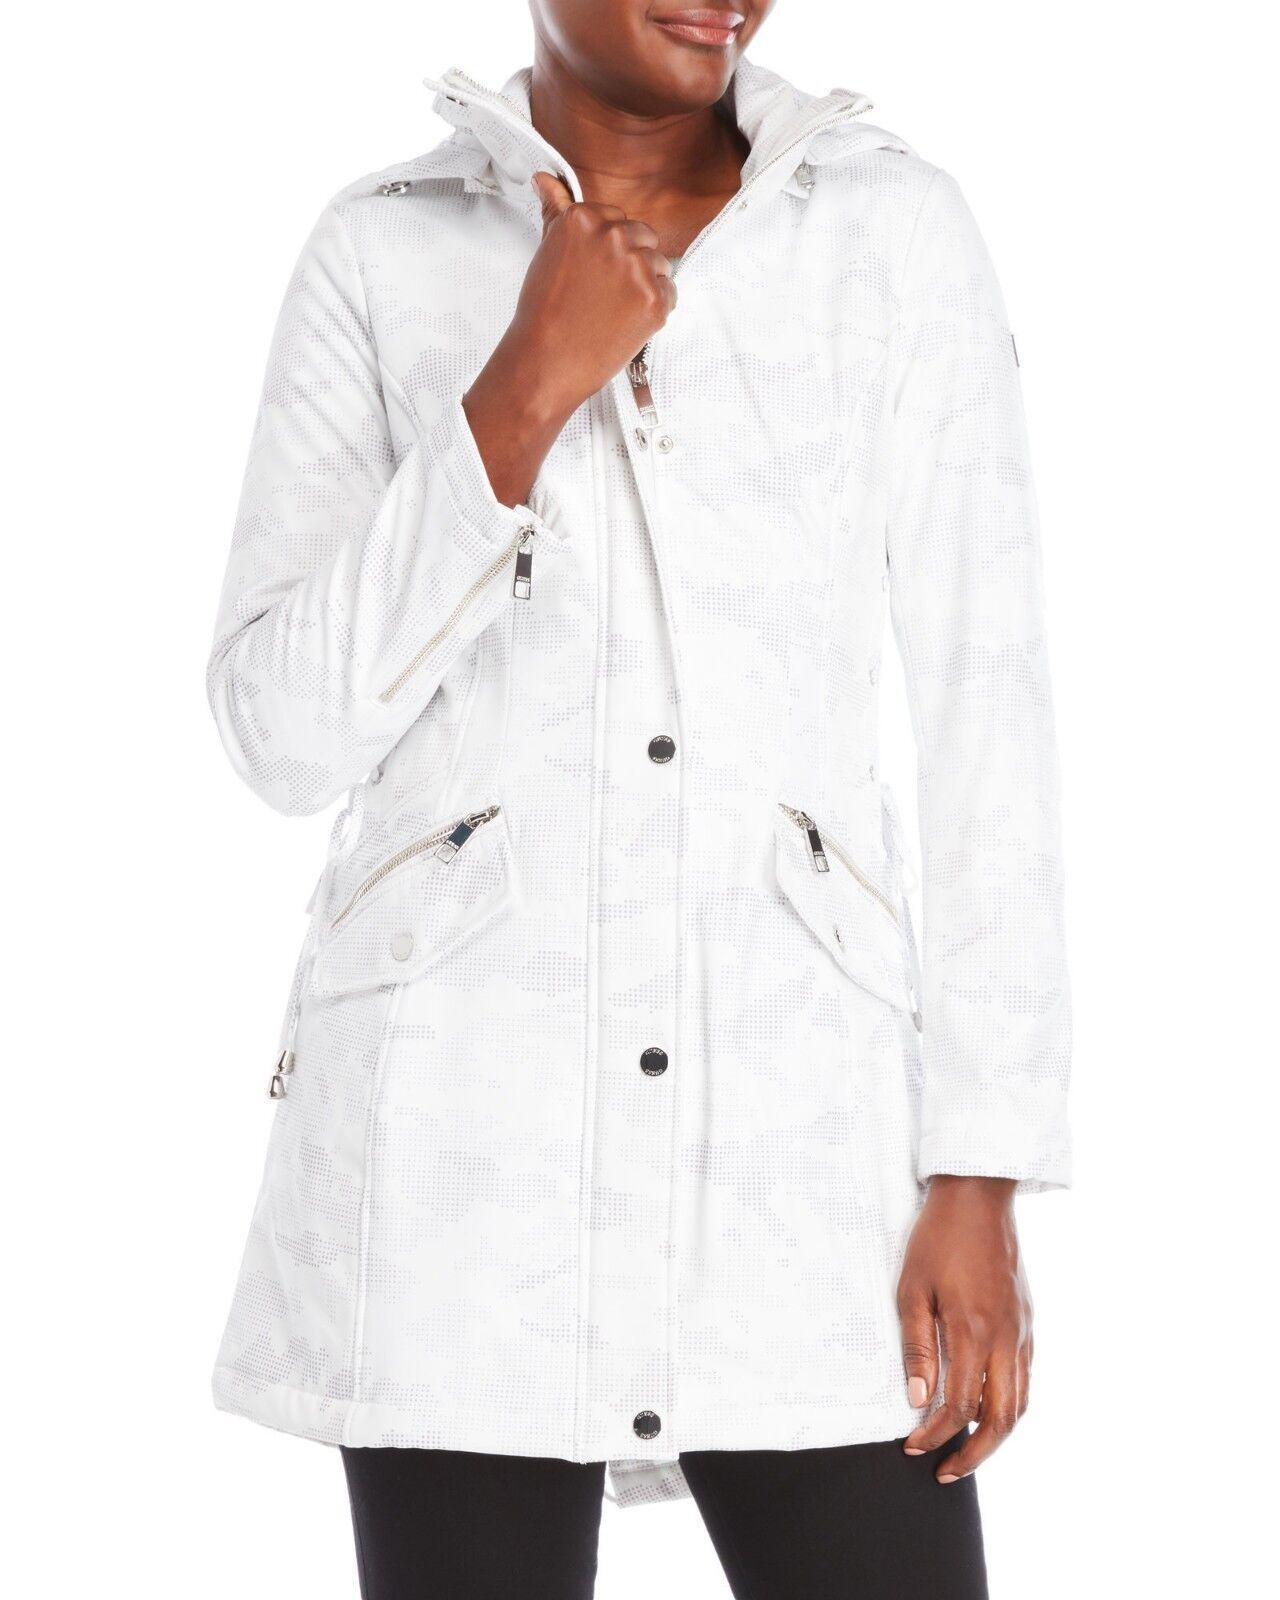 NEW  Guess Women's White Hooded Digital Camouflage Softshell Coat Size M